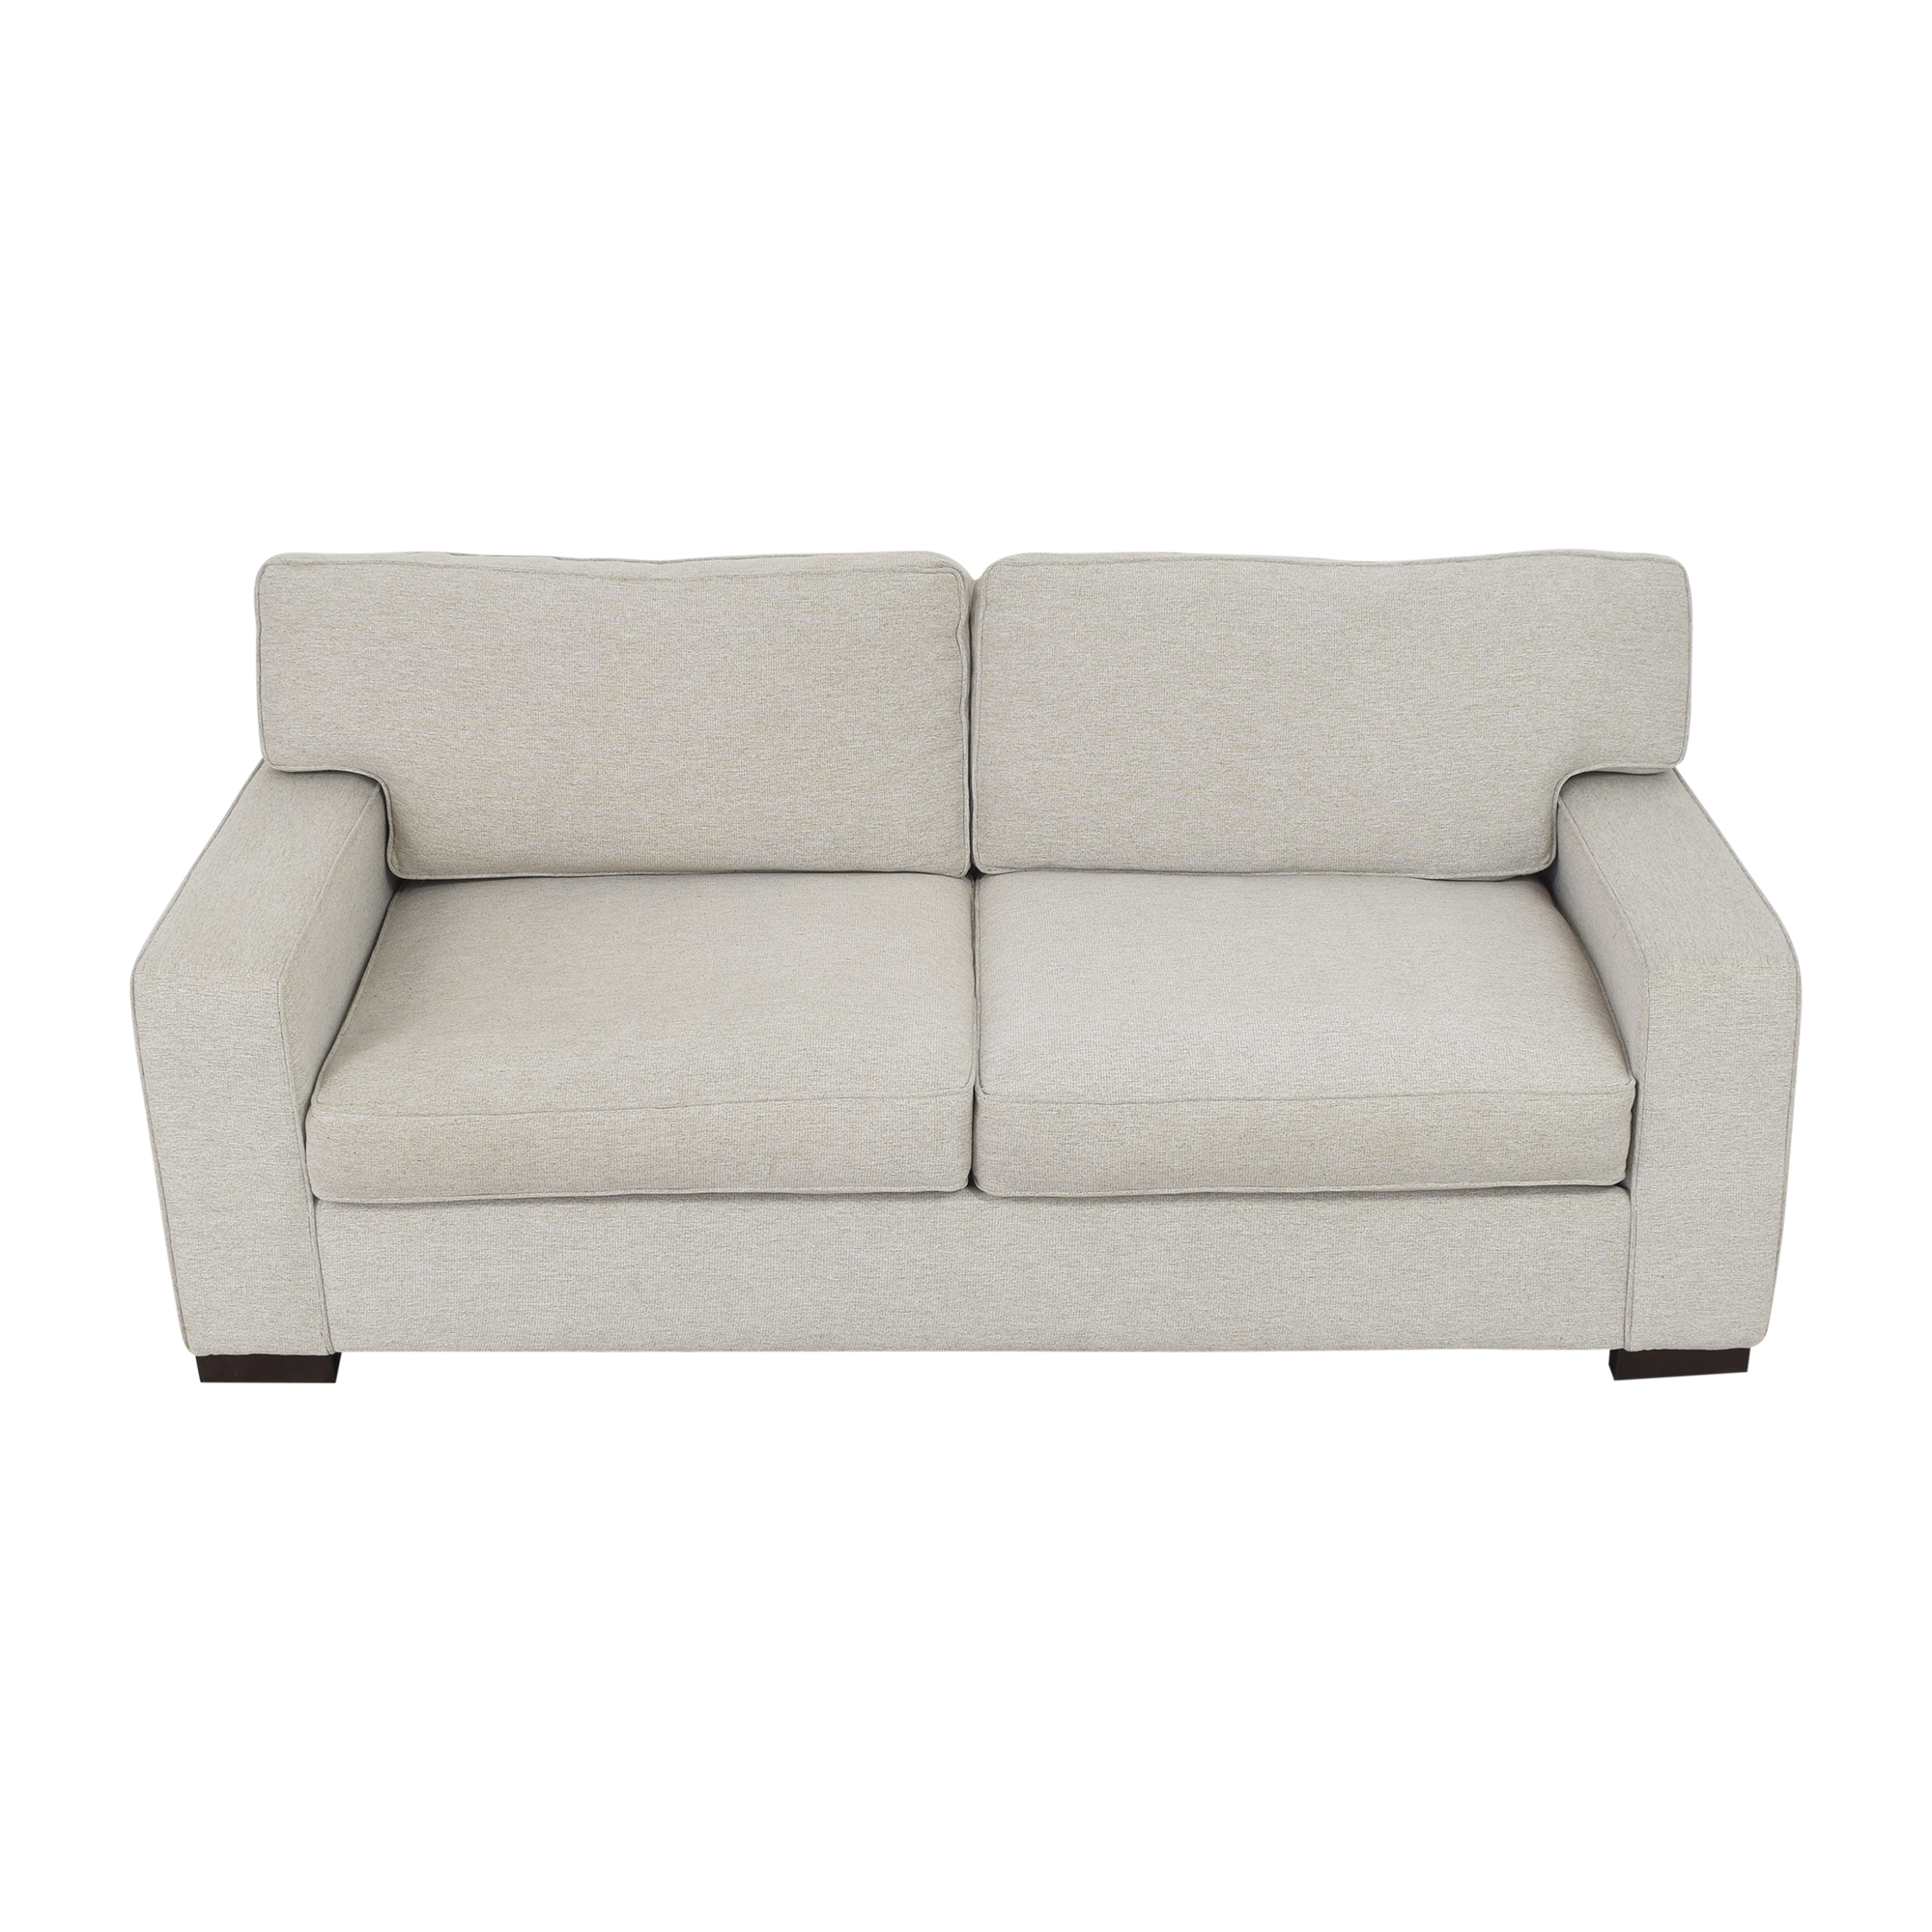 Max Home Max Home Wellesley Two Cushion Sofa light gray